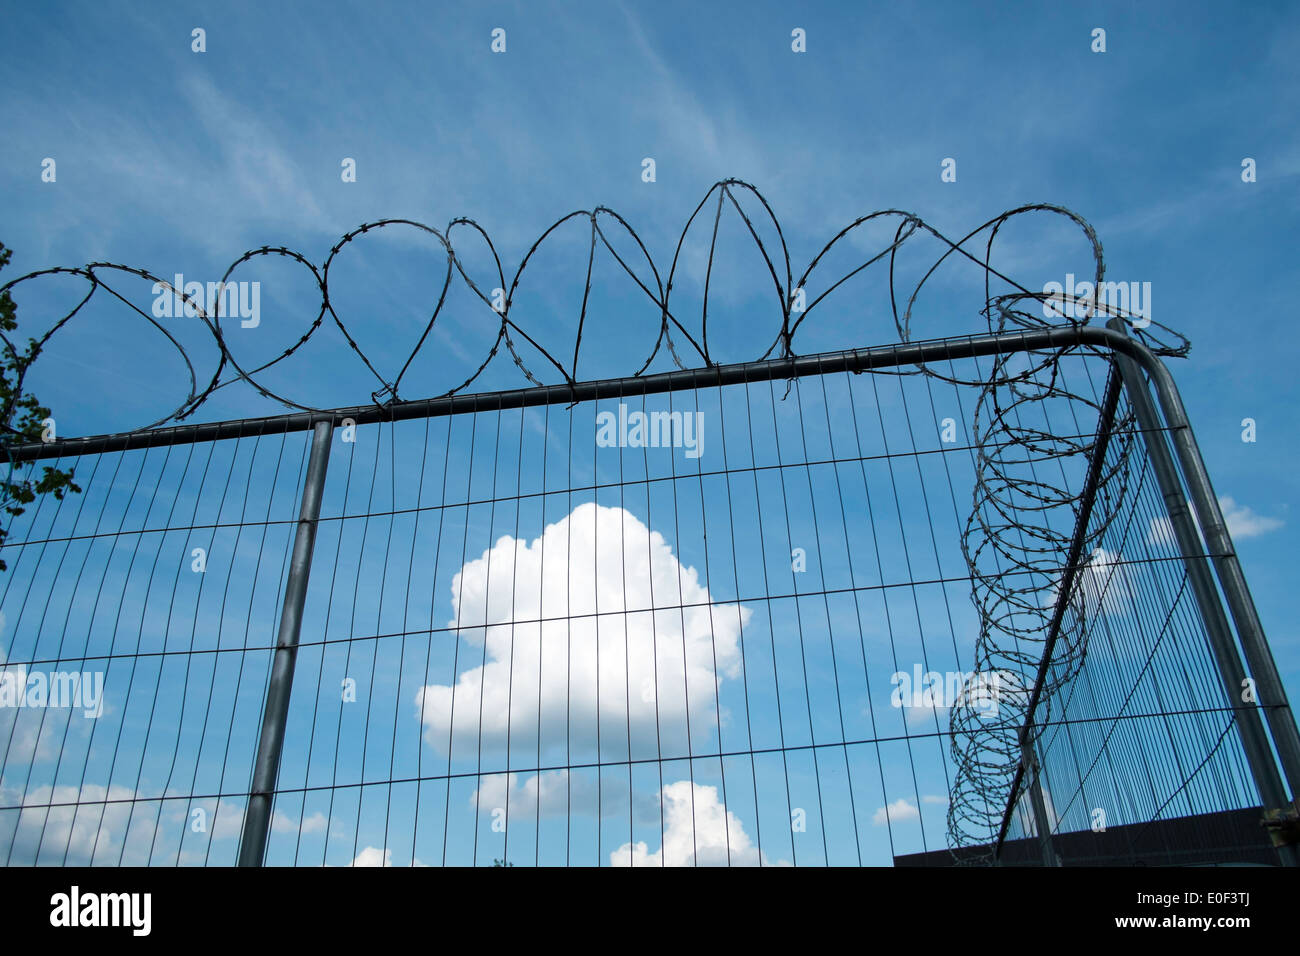 barbed wire fence security safety  Hackney Wick, London, United Kingdom - Stock Image